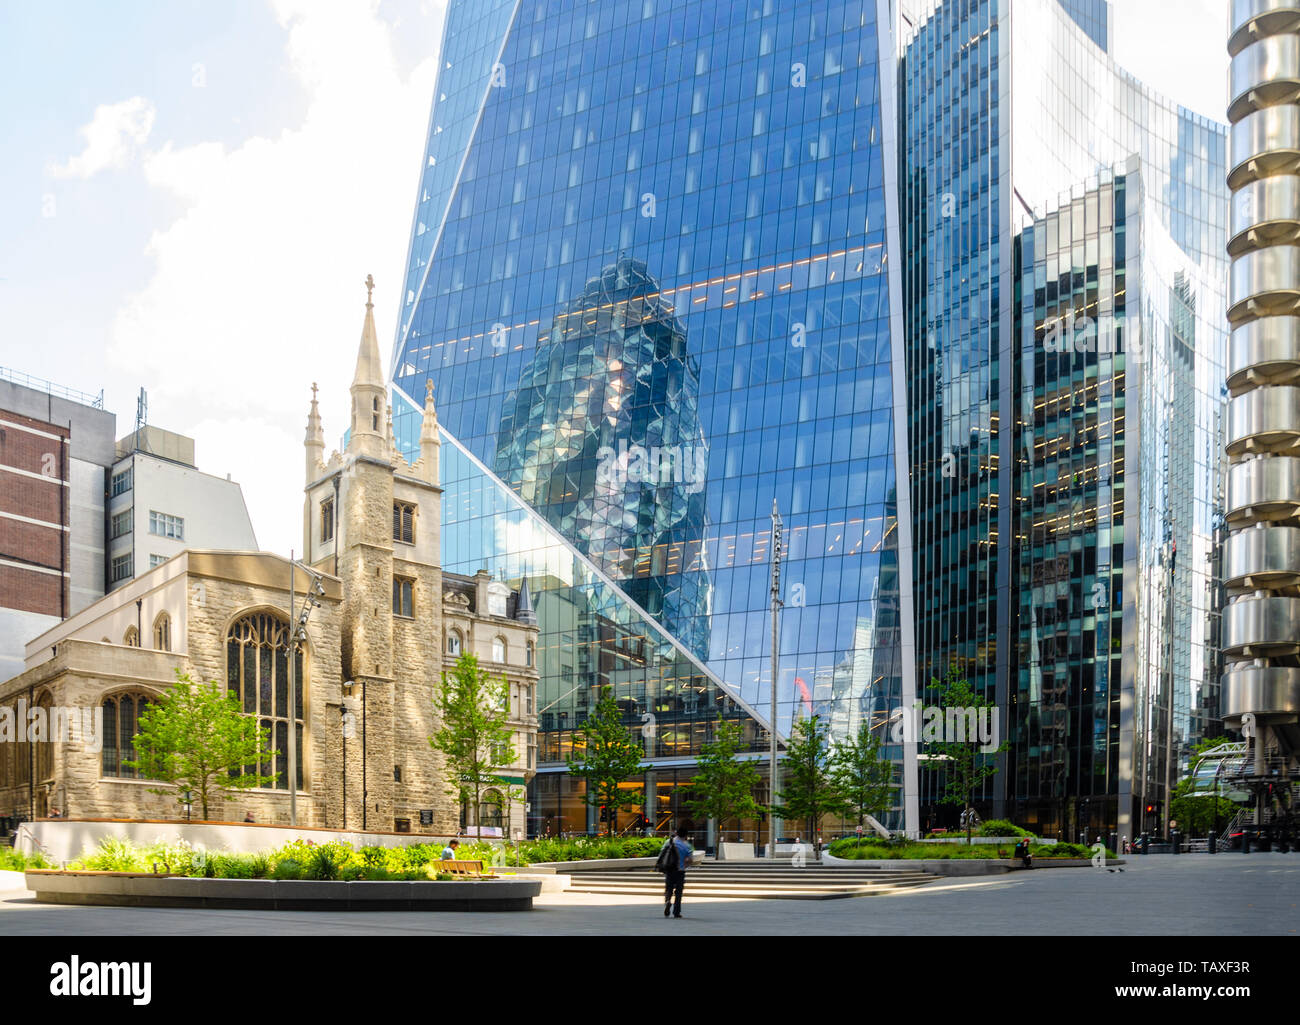 the-gherkin-reflects-in-the-side-of-the-scalpel-on-a-sunny-day-in-the-financial-district-in-the-city-of-london-TAXF3R.jpg